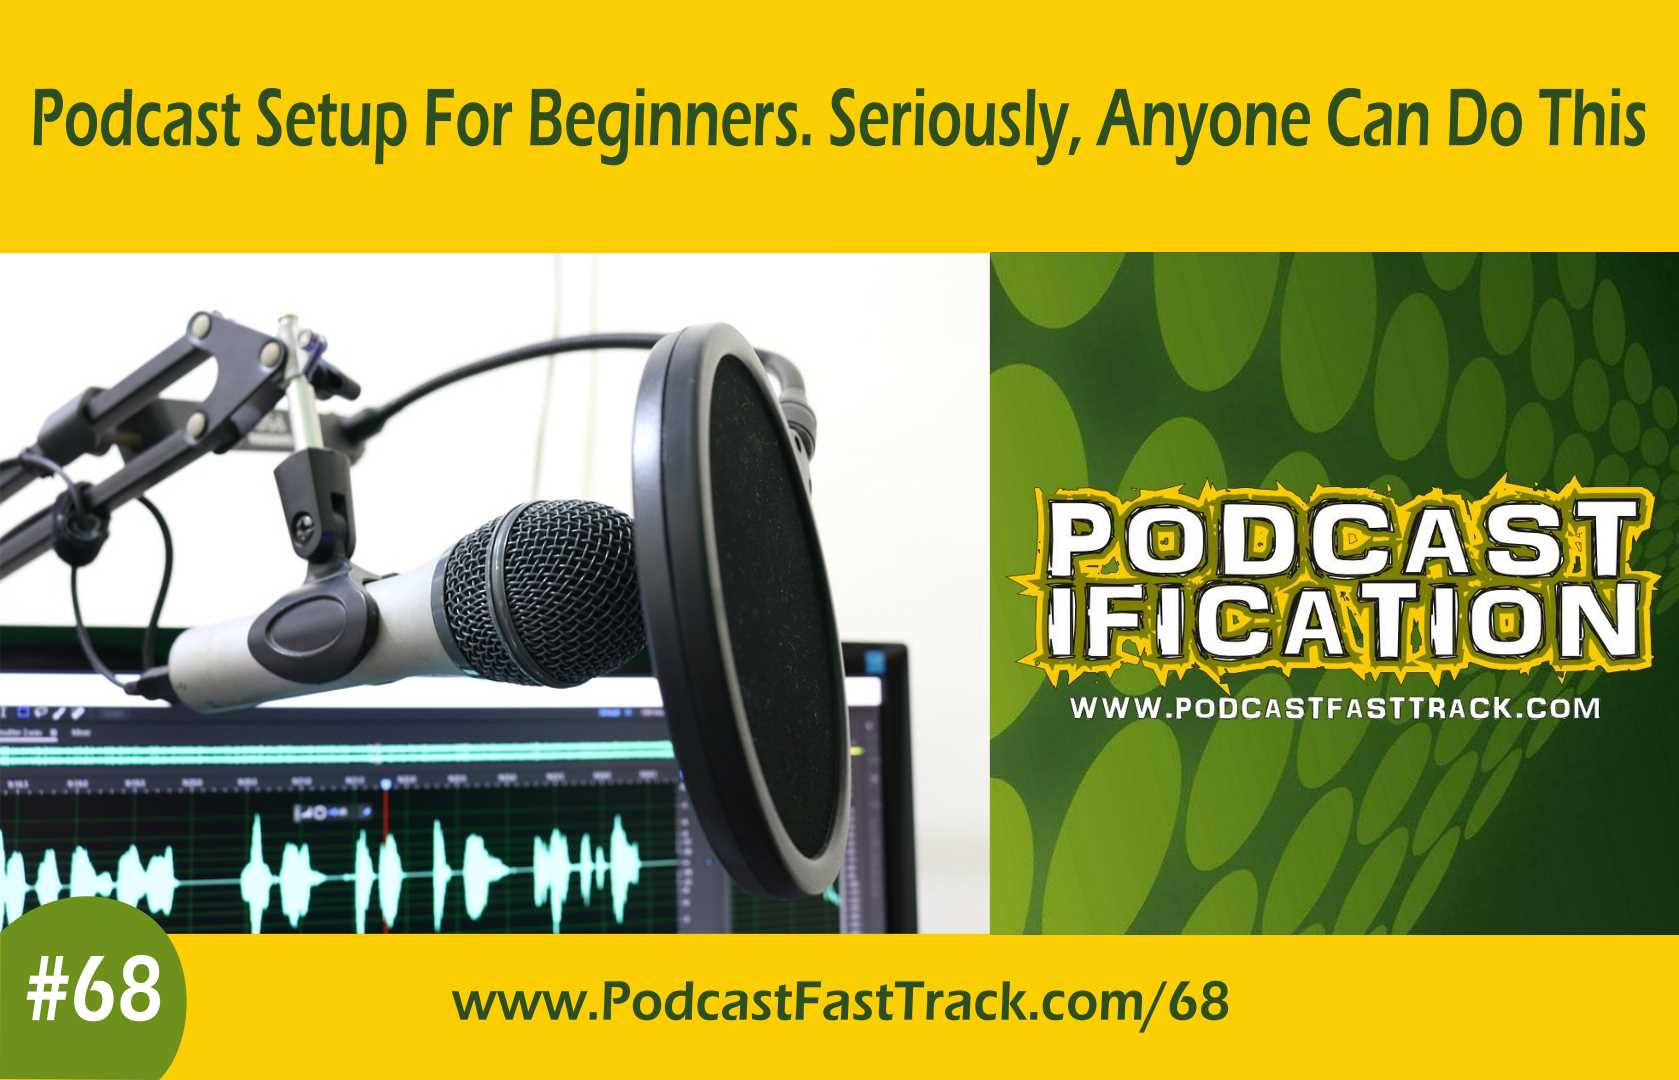 podcastificating world of podcasting  I've build a business to